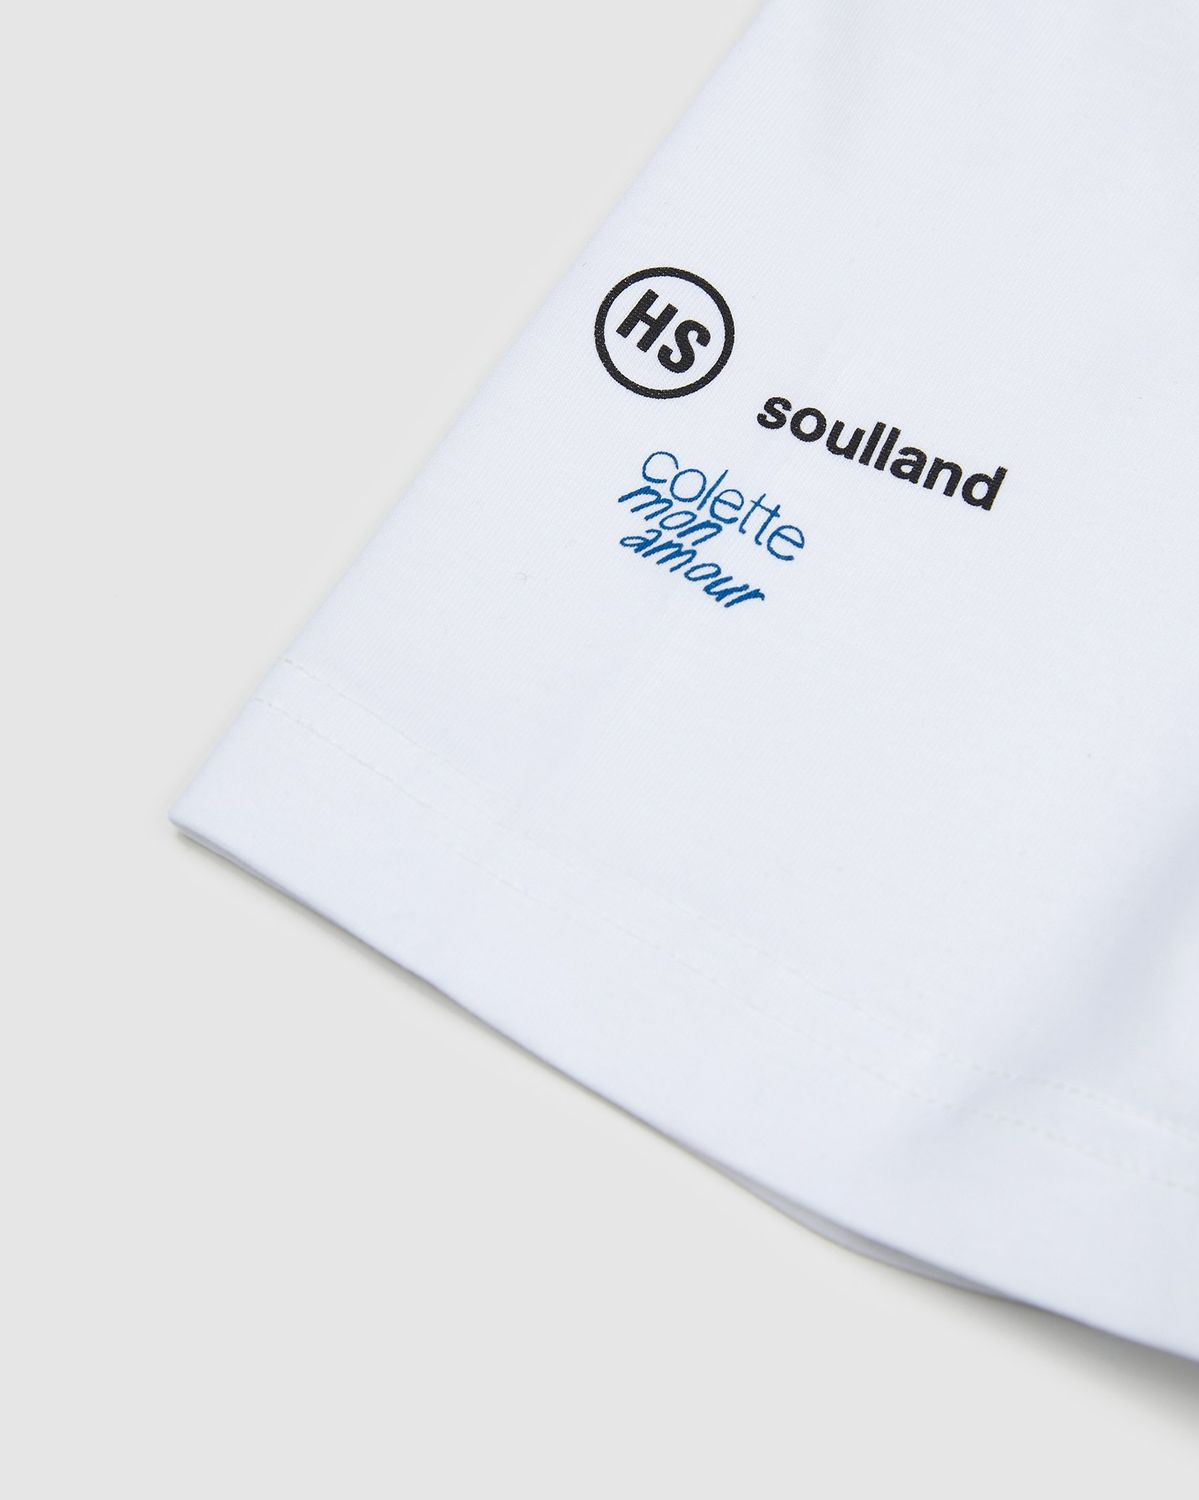 Colette Mon Amour x Soulland —  Snoopy Bed White T-Shirt - Image 4